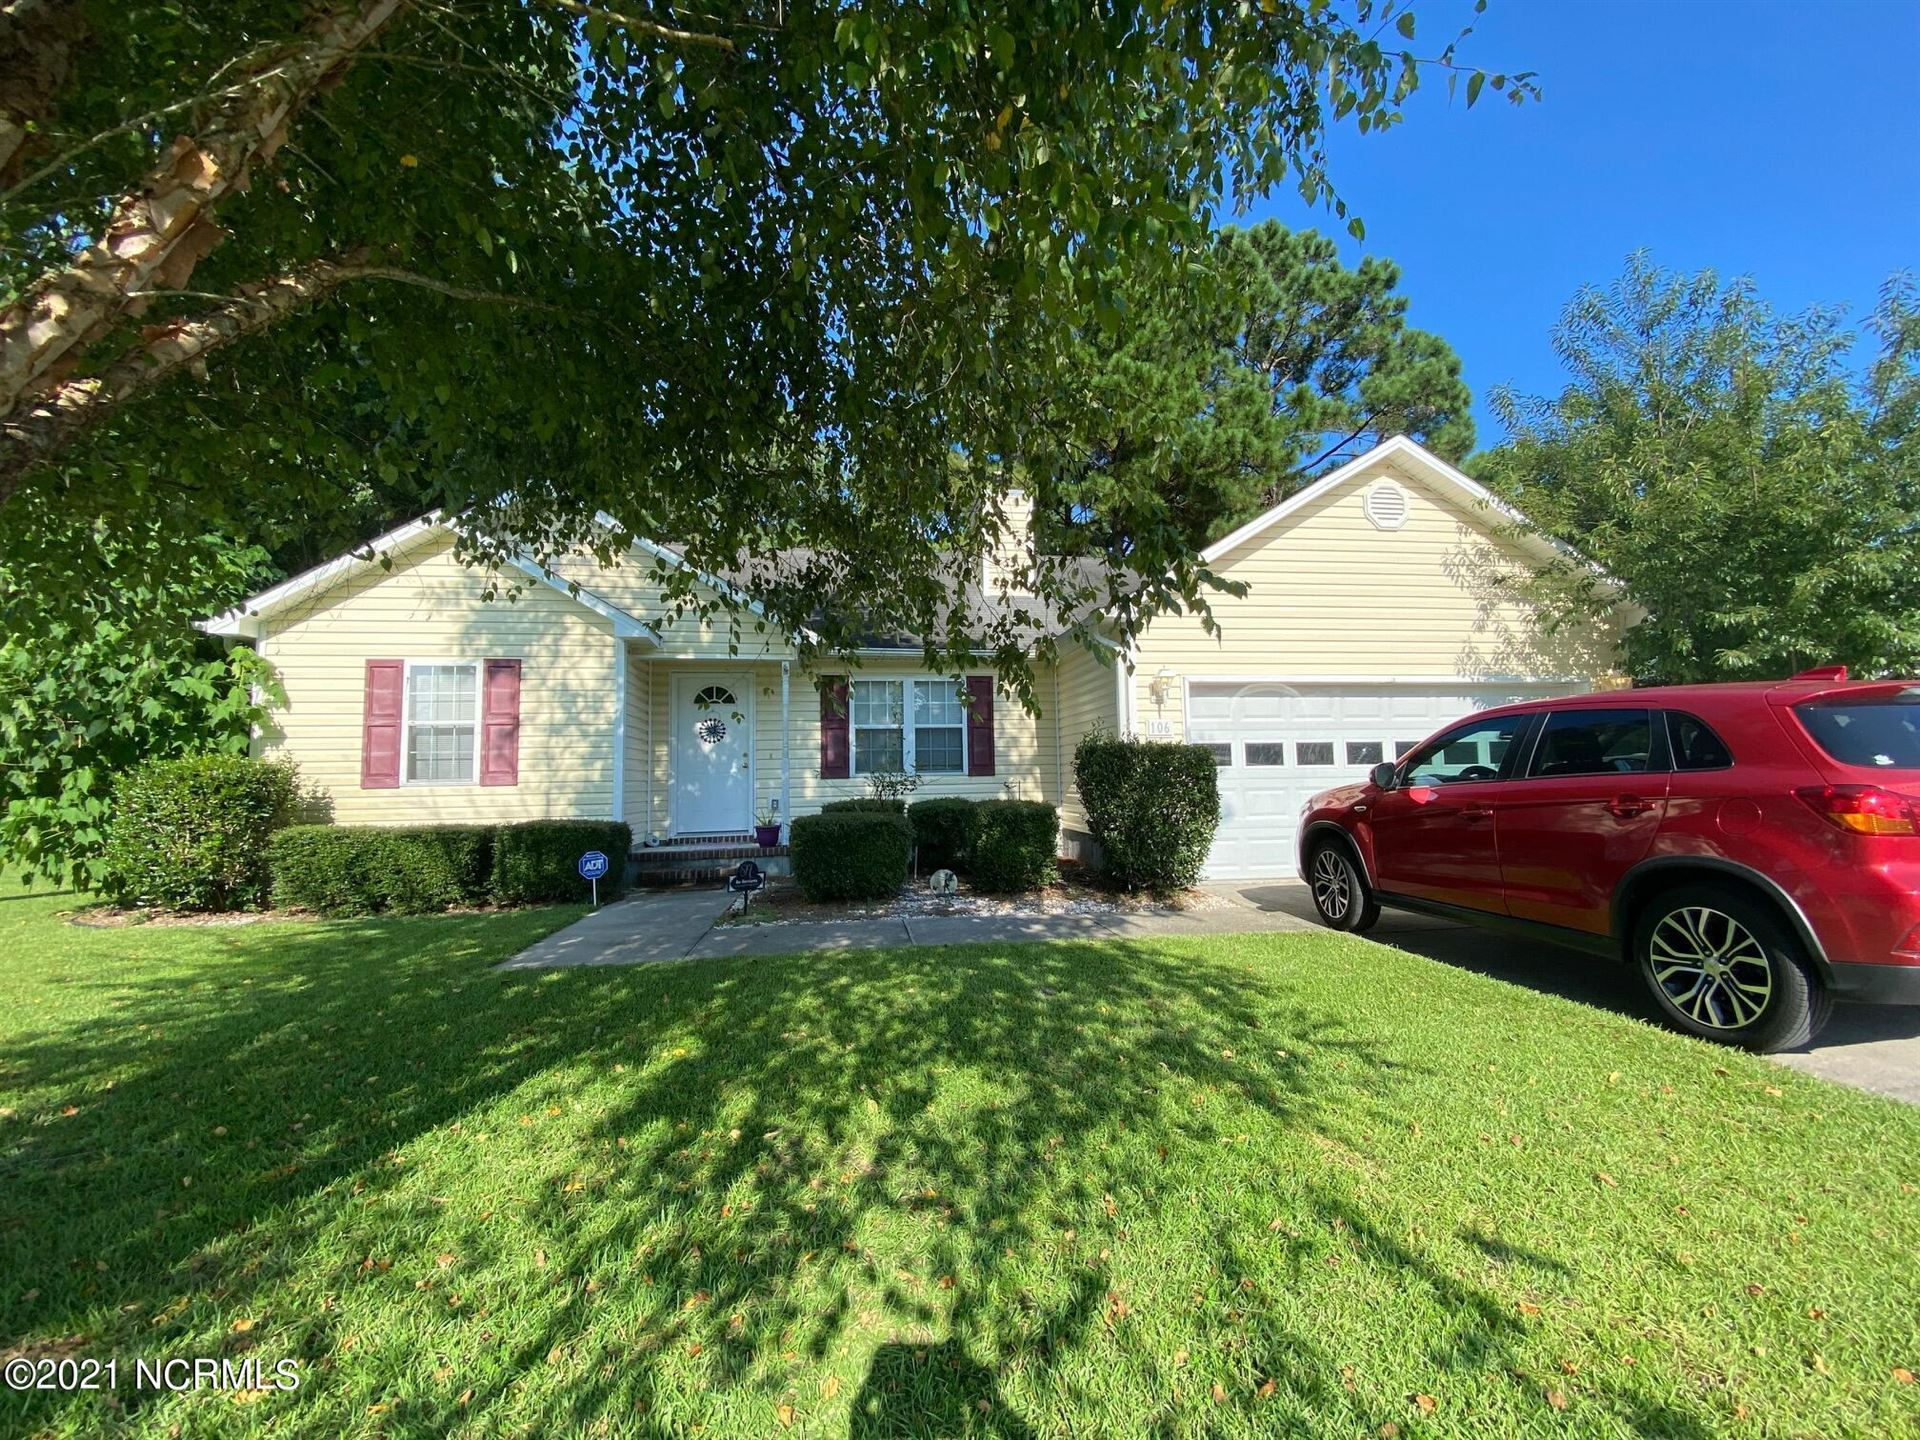 Photo of 106 Knotts Court, Sneads Ferry, NC 28460 (MLS # 100288159)